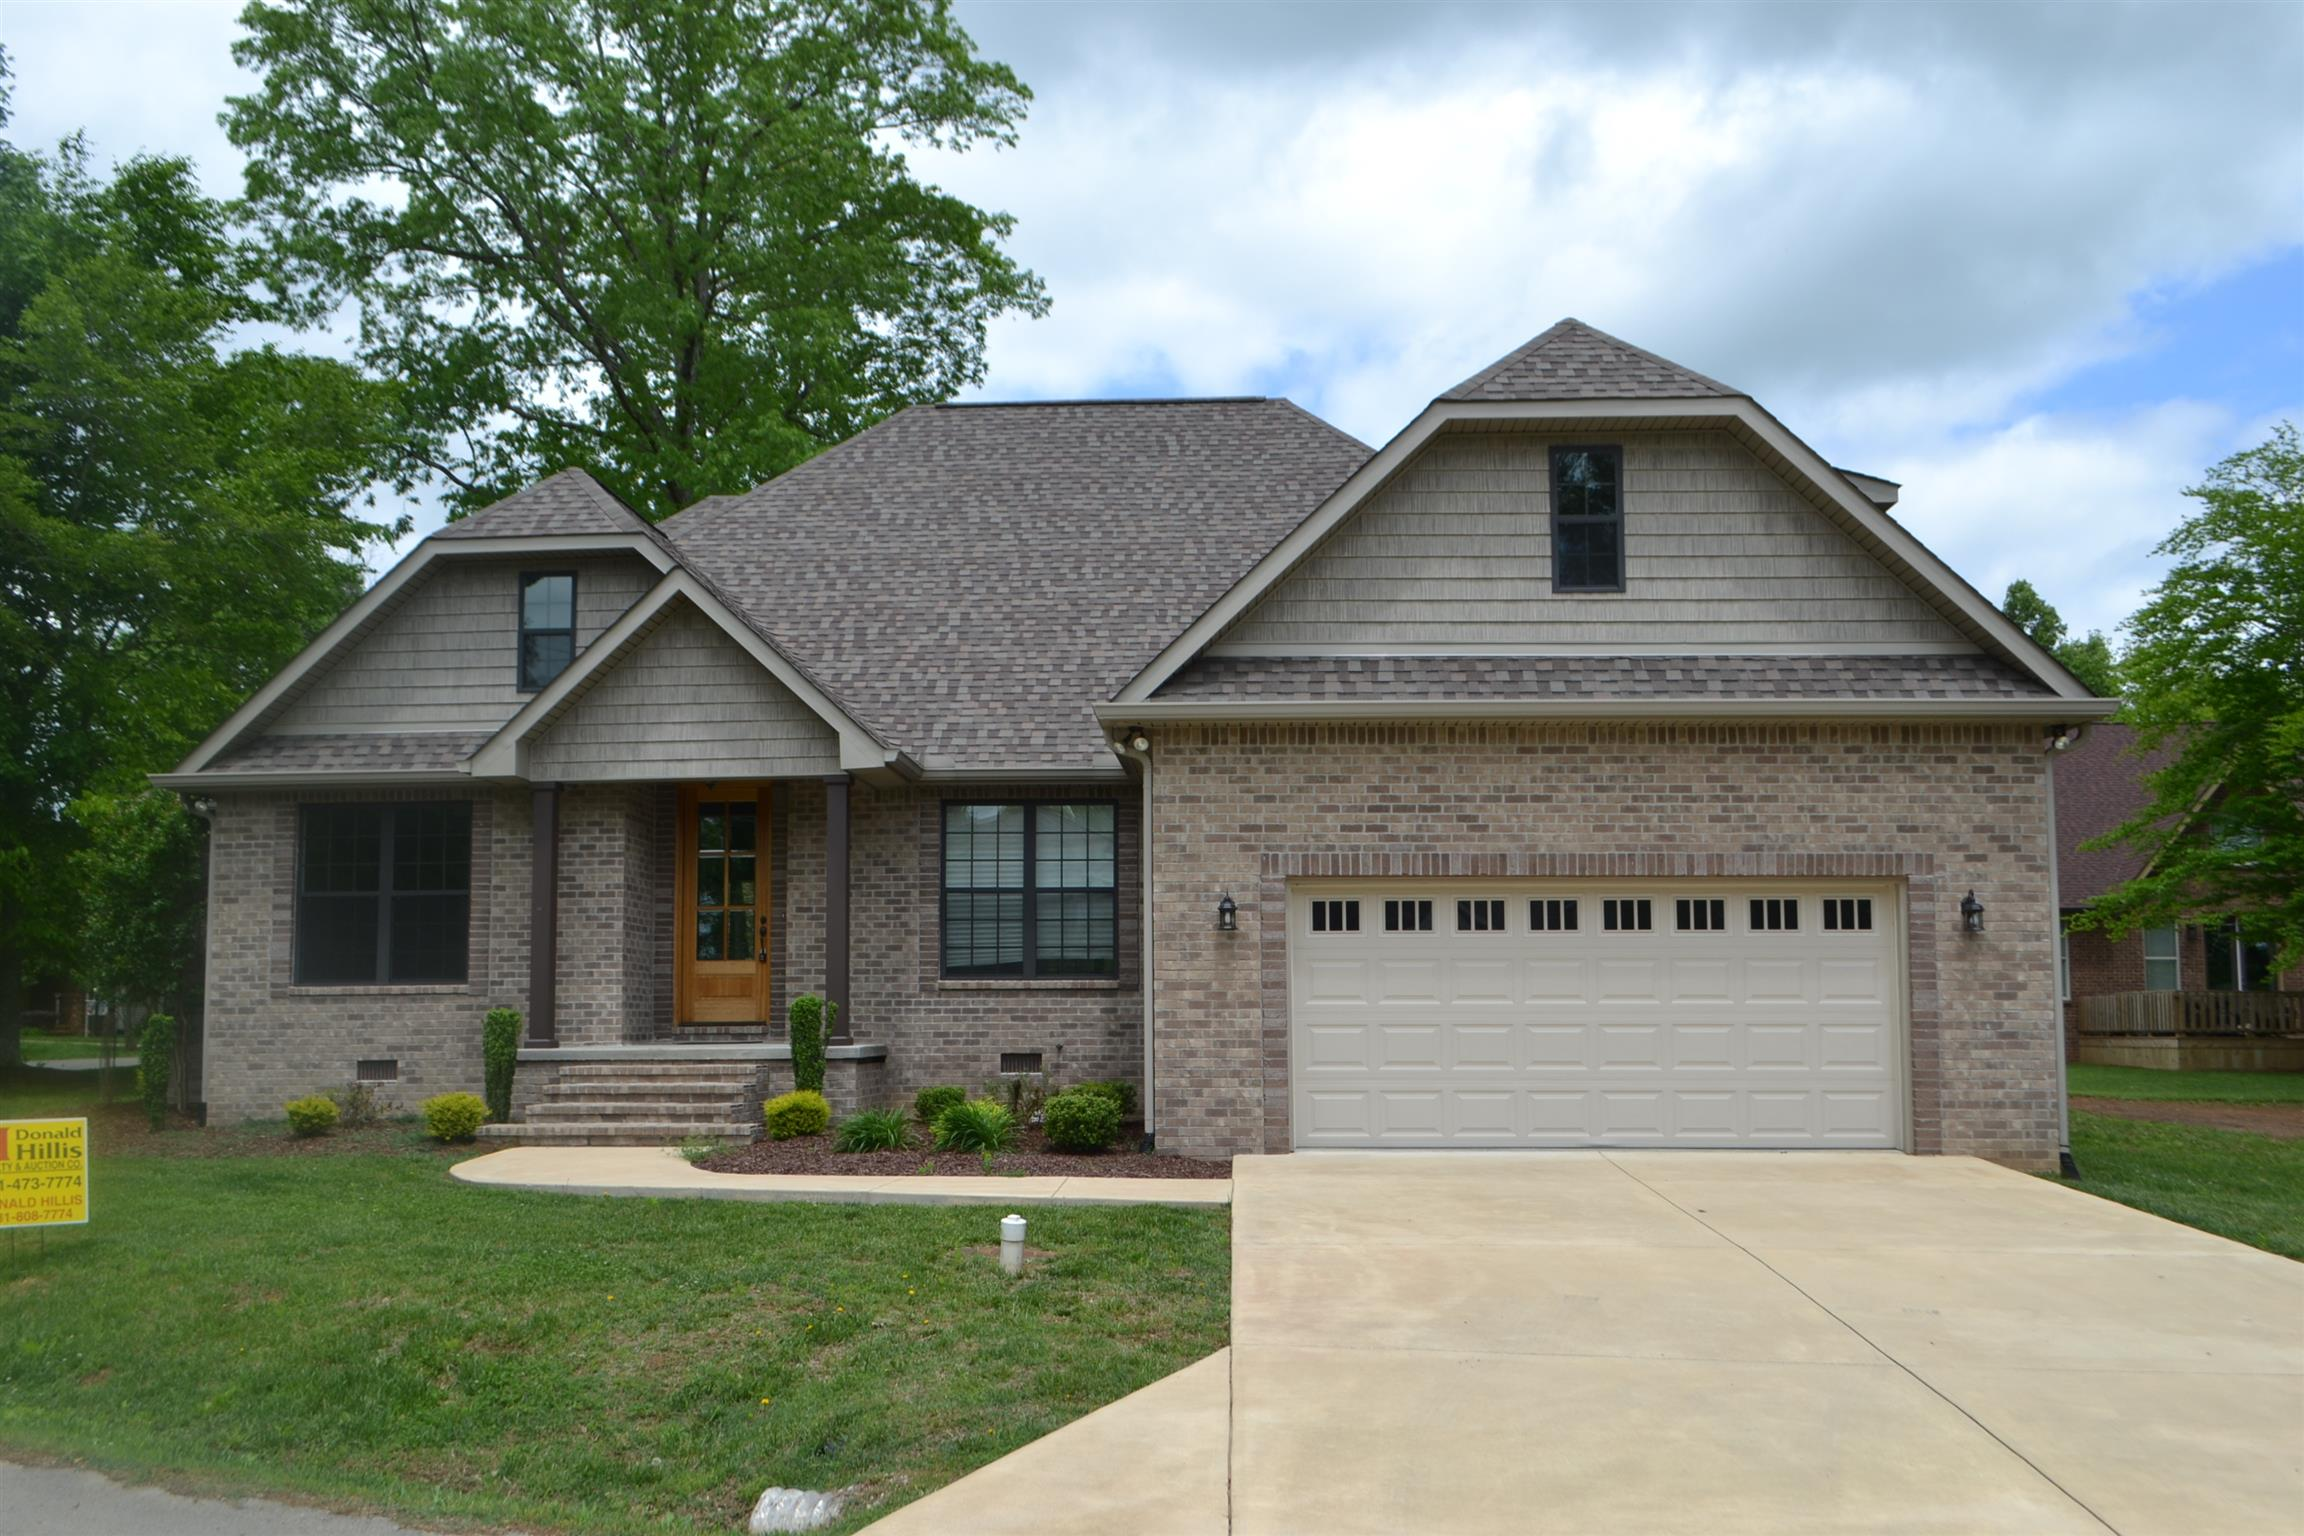 835 Beckridge Rd, McMinnville, TN 37110 - McMinnville, TN real estate listing